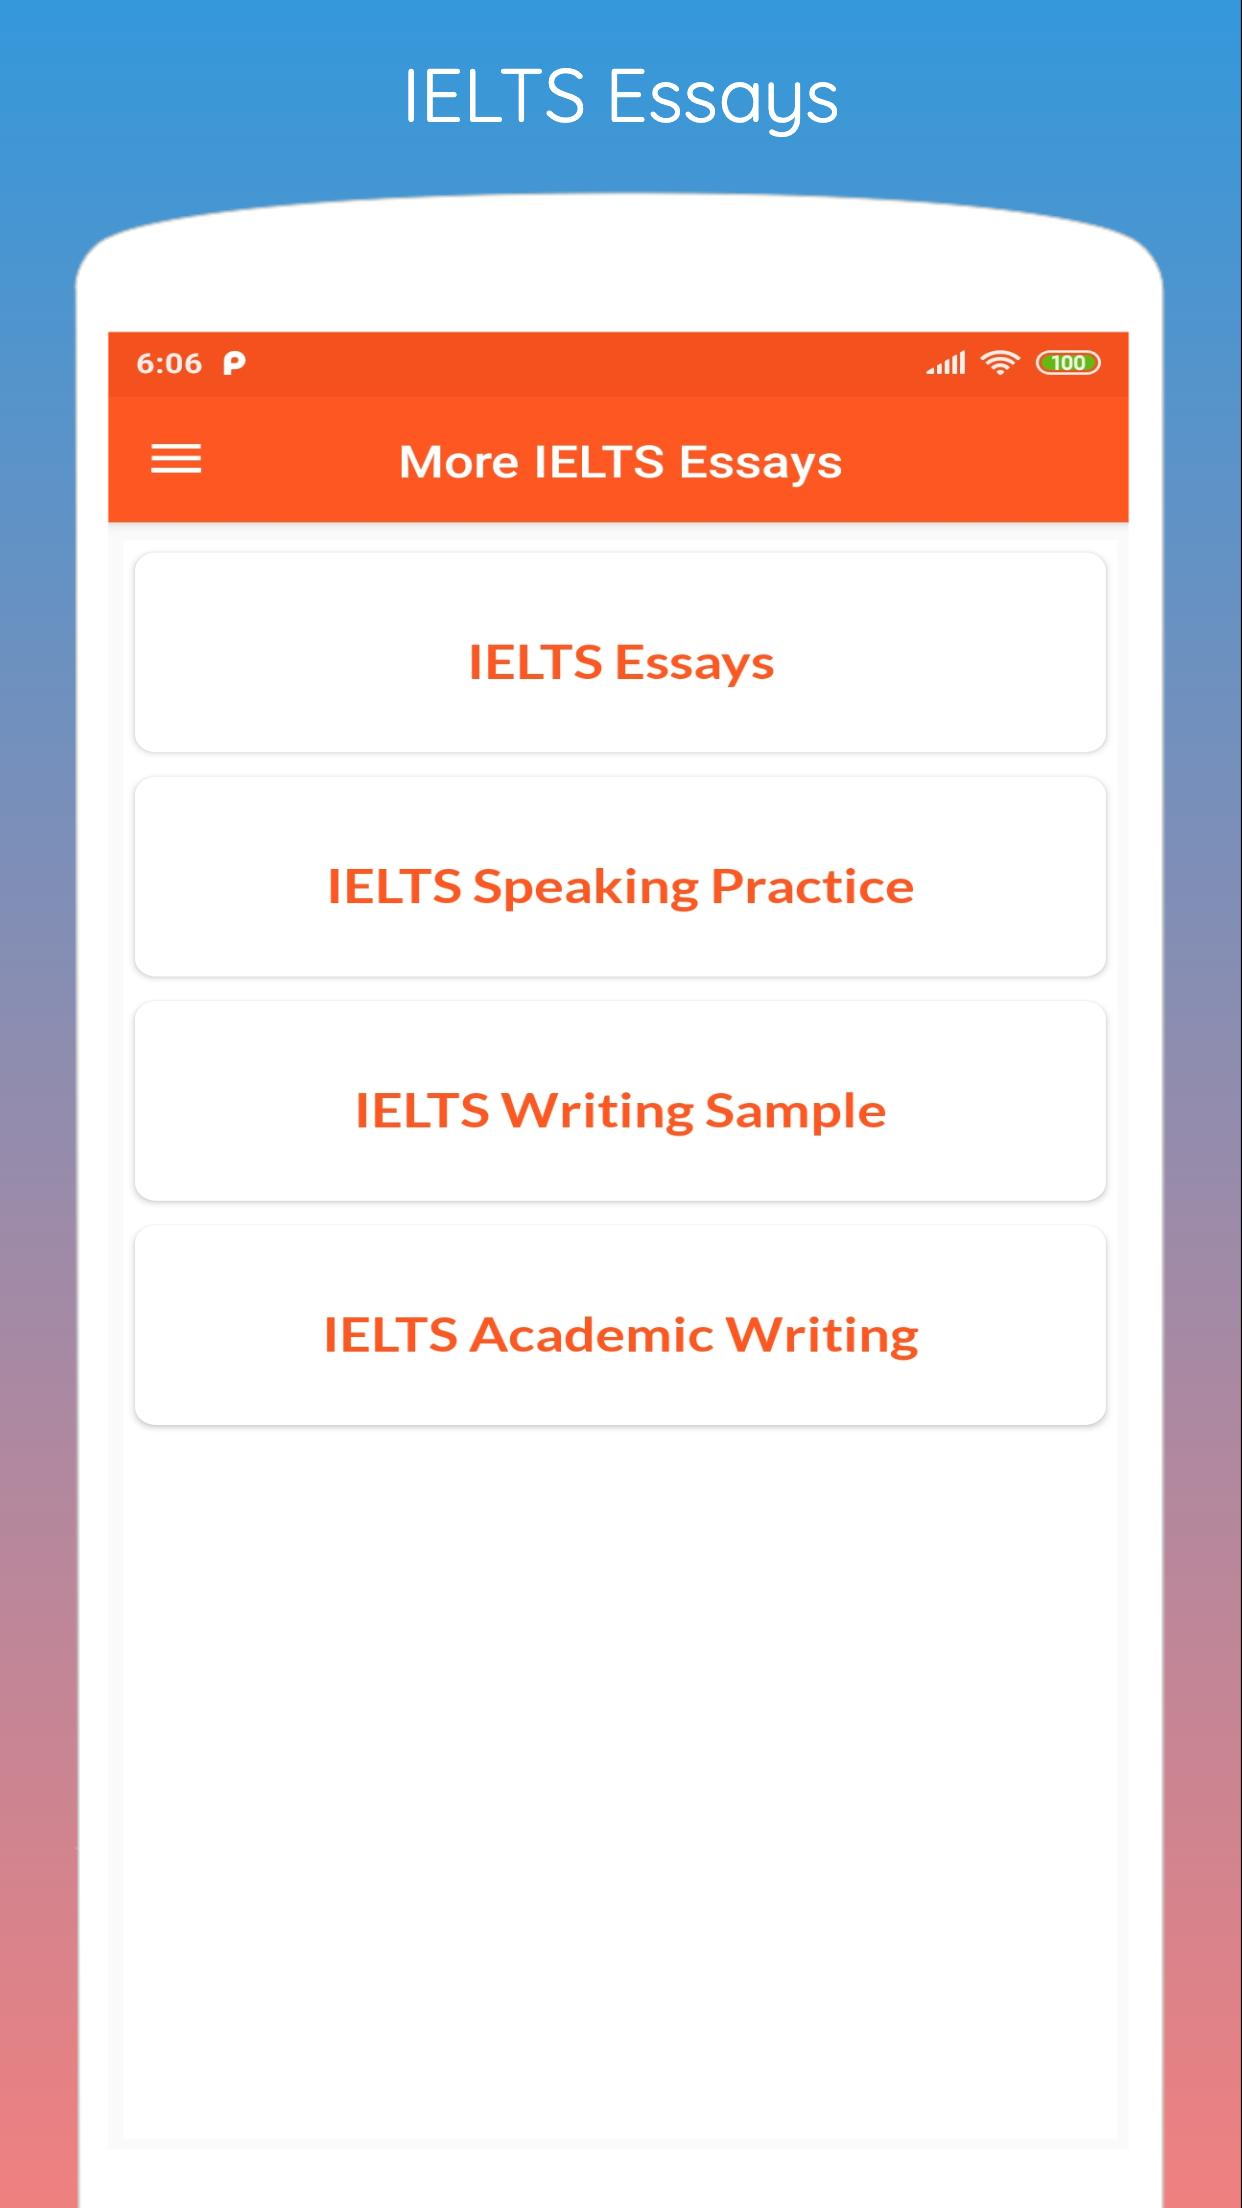 Buy Essay Paper  Romeo And Juliet English Essay also Persuasive Essay Sample Paper Top English Essays For Android  Apk Download Example Of A Thesis Statement For An Essay